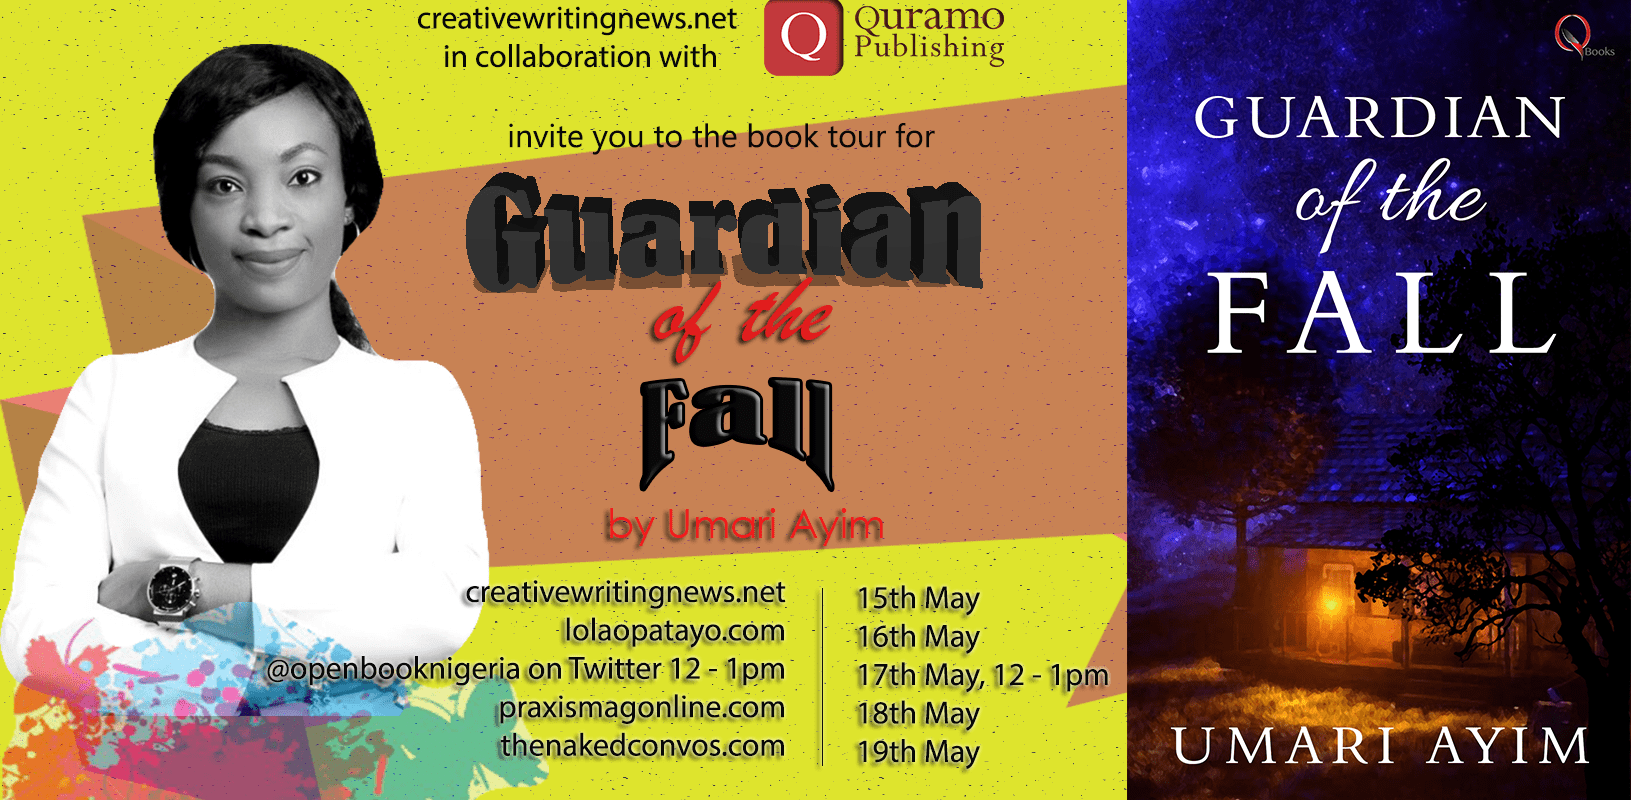 Umari Ayim's Guardian of the Fall